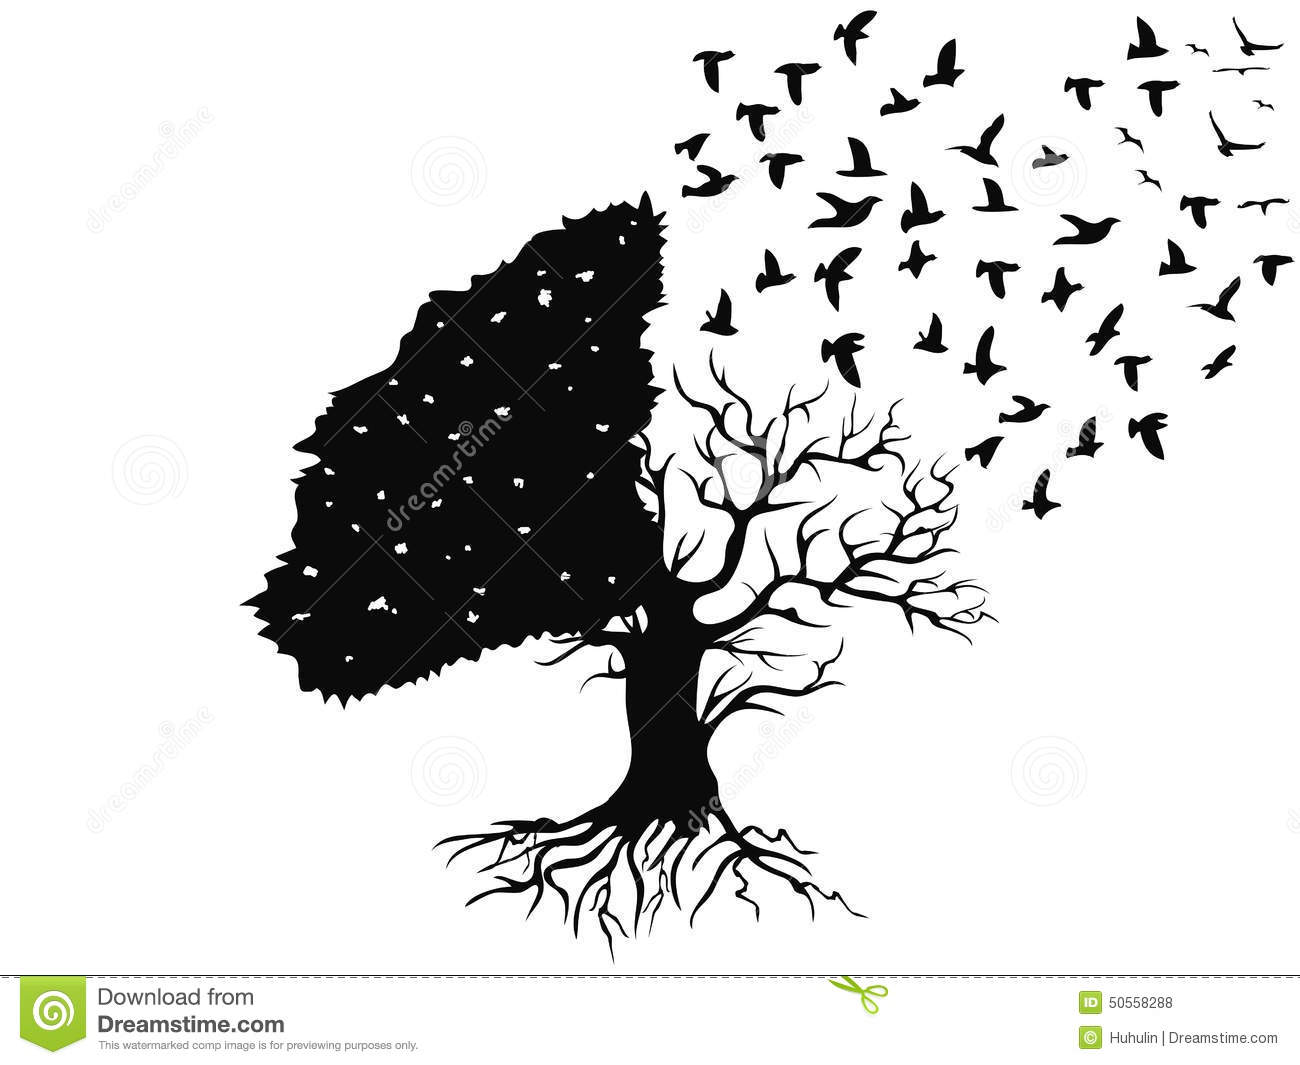 Birds Flying From The Tree Stock Vector - Image: 50558288